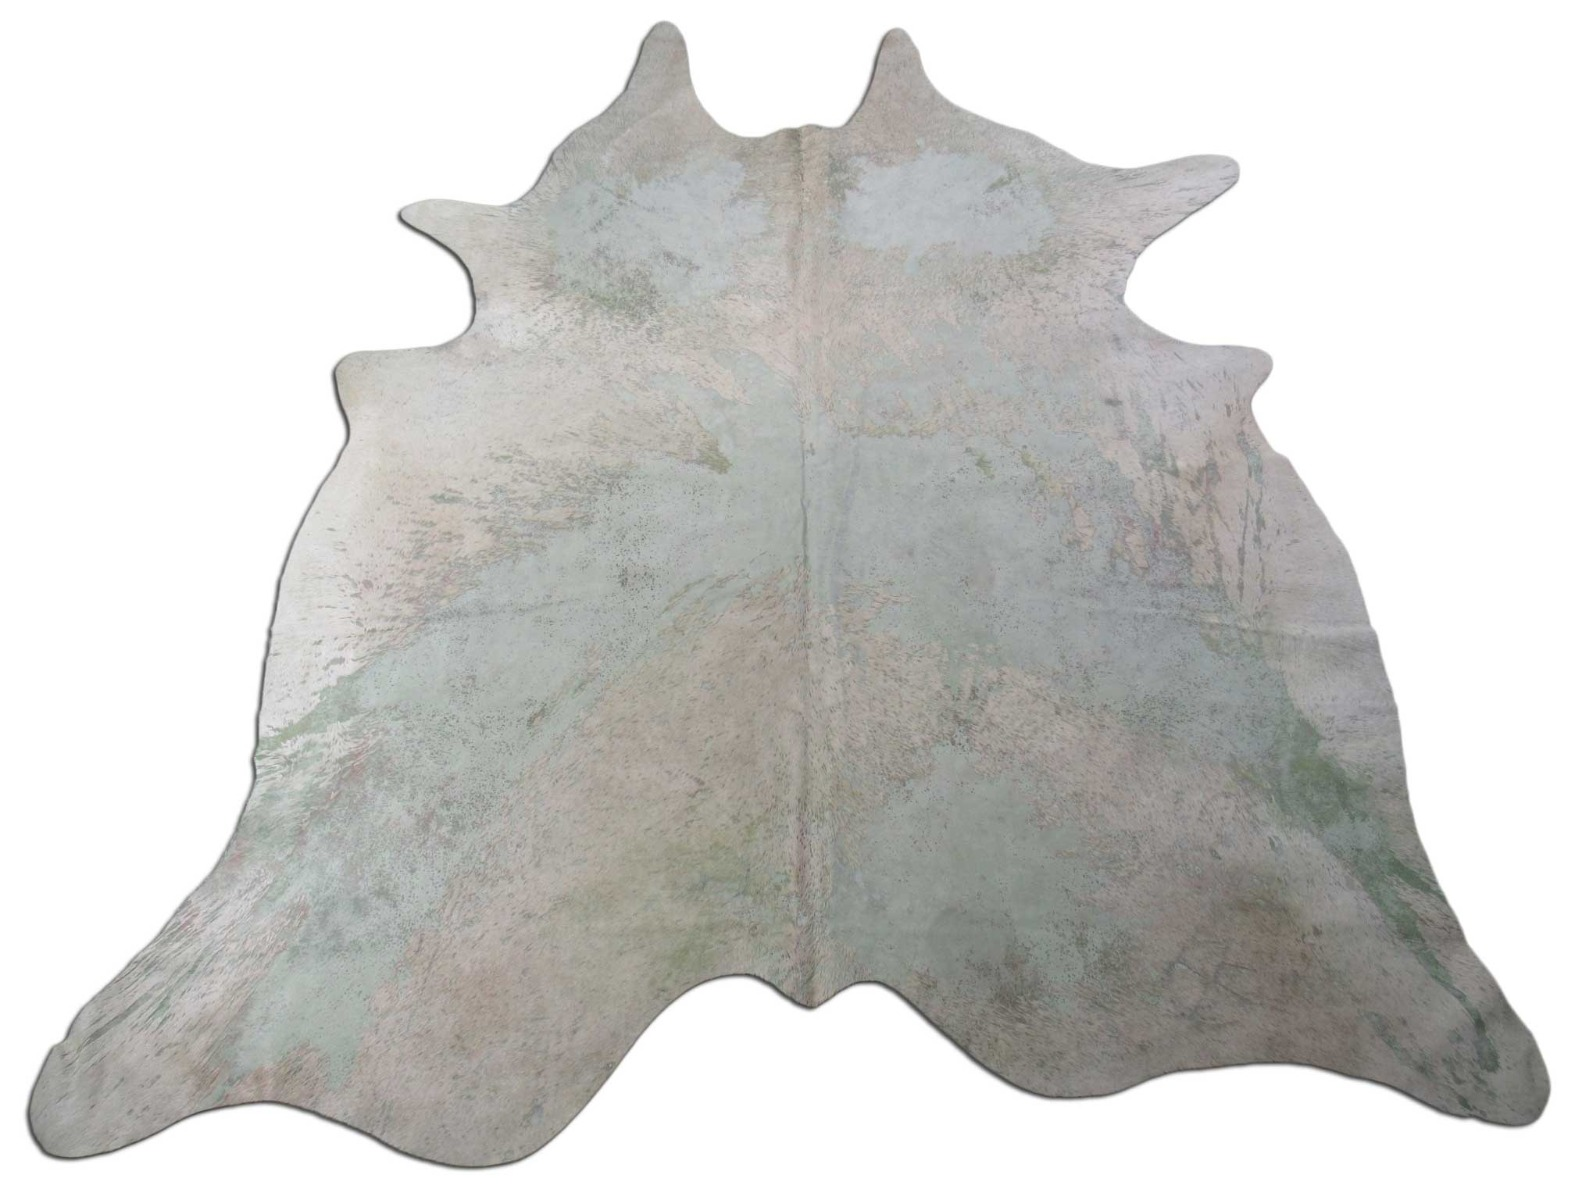 A-1434 Light Green Acid Washed Cowhide Rug Size: 7 1/2' X 6 1/2'